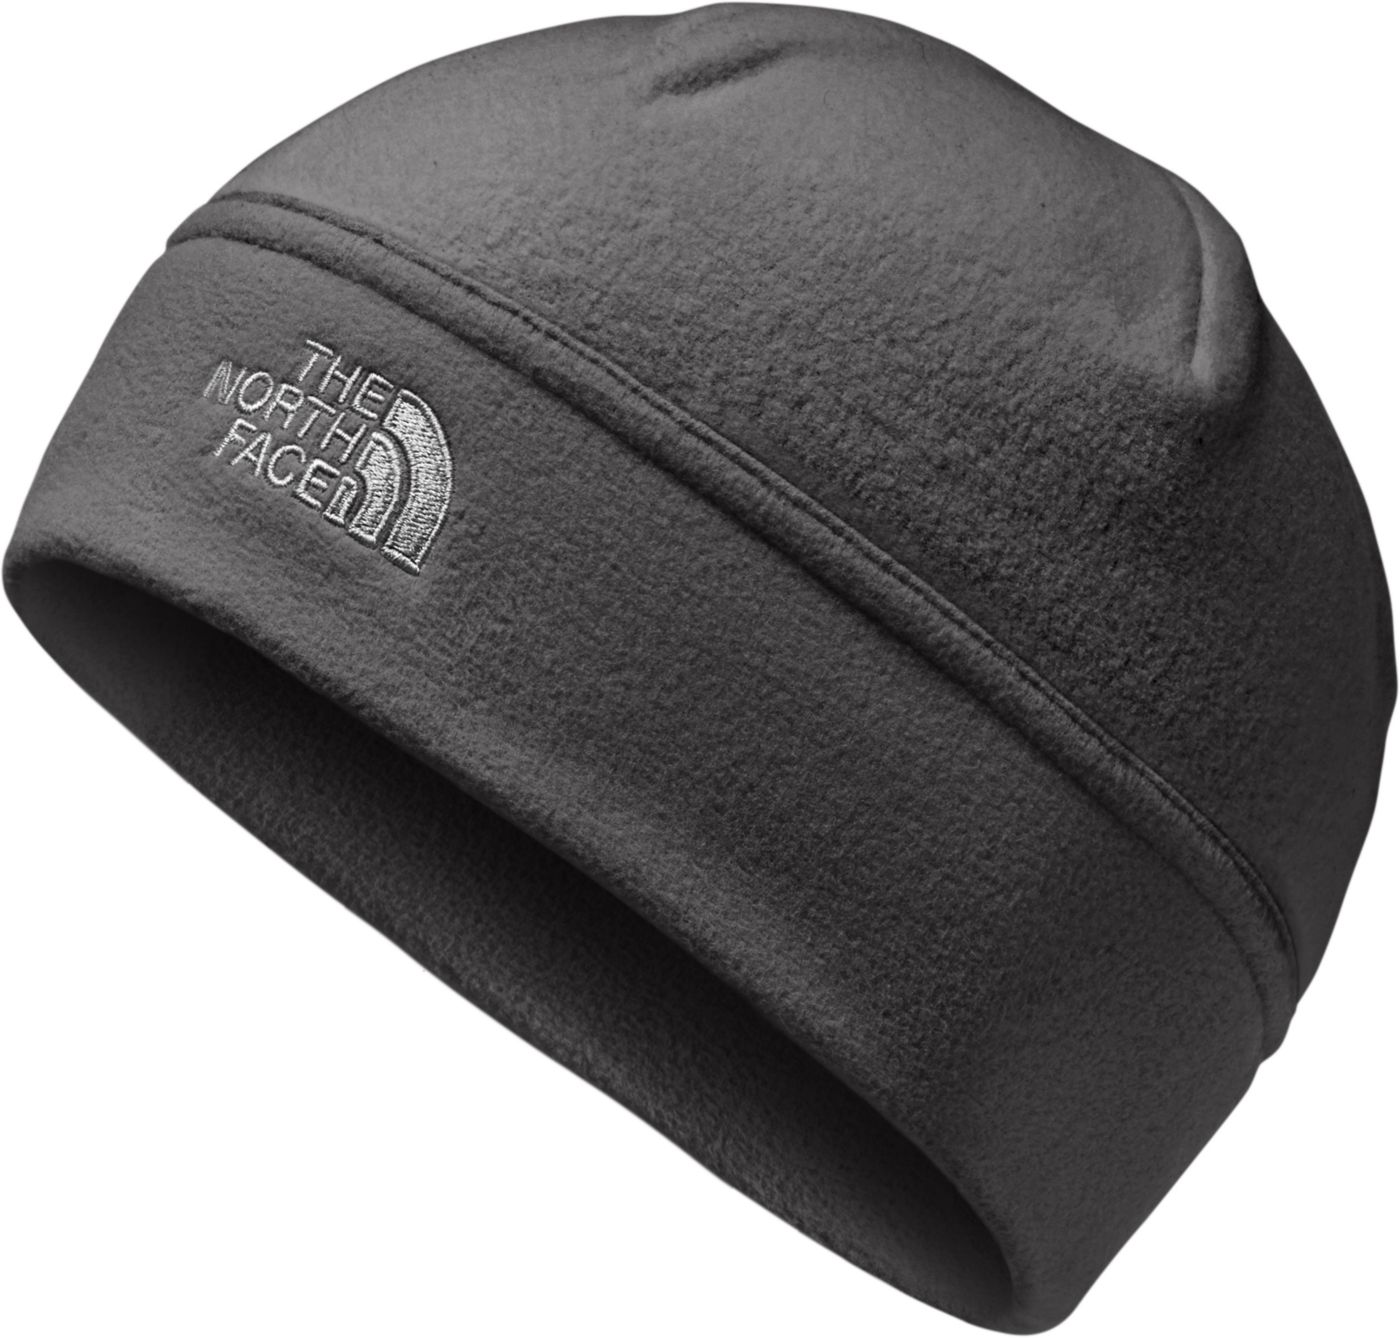 The North Face Men's Standard Issue Reversible Beanie